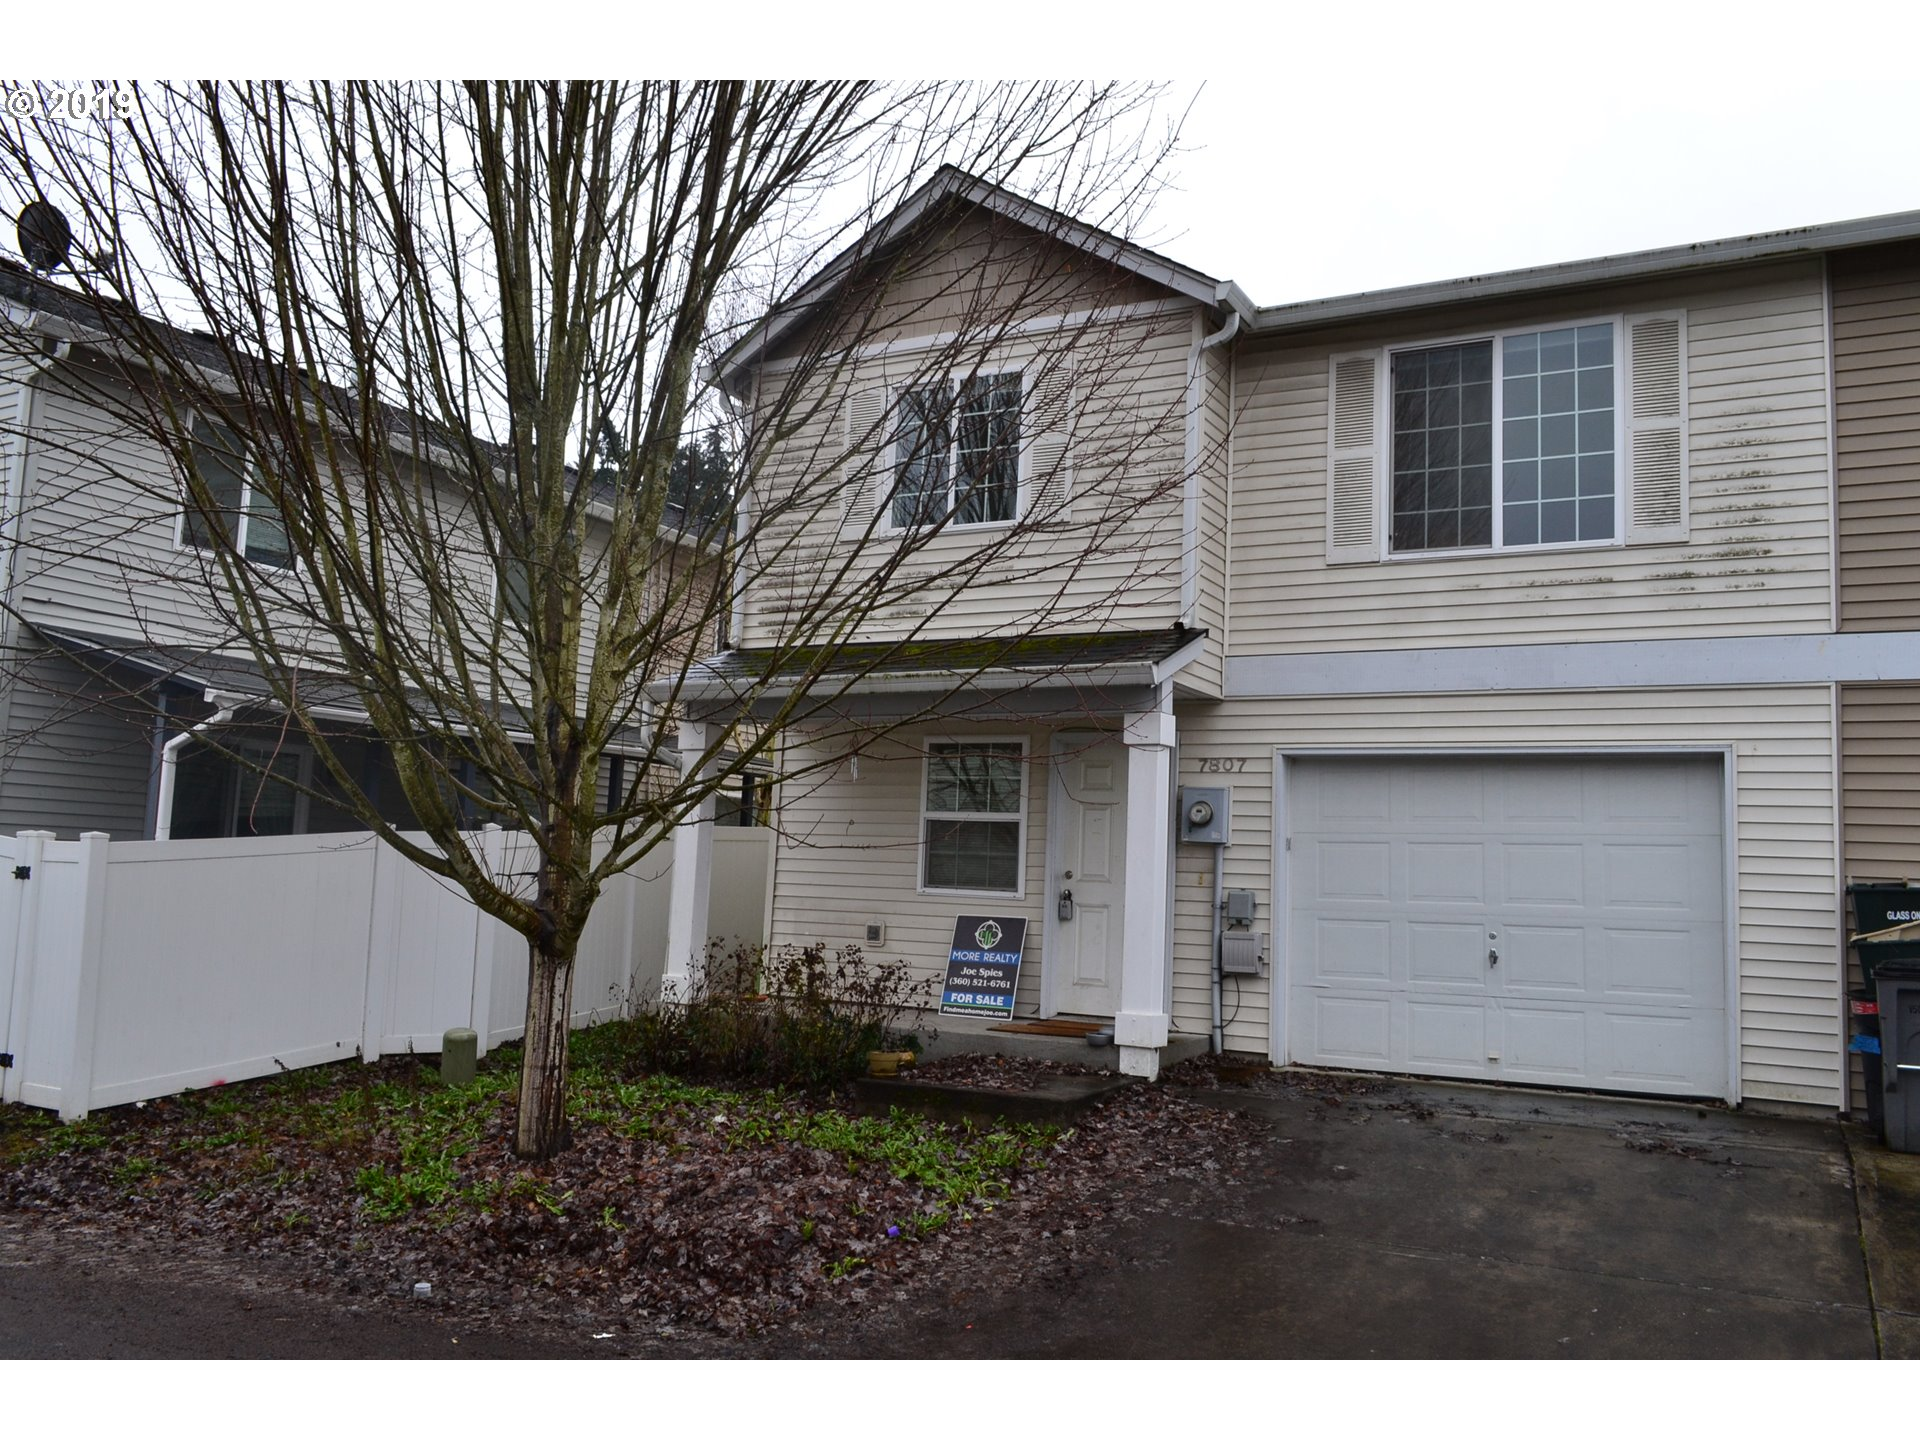 1421 sq. ft 3 bedrooms 2 bathrooms  House ,Vancouver, WA